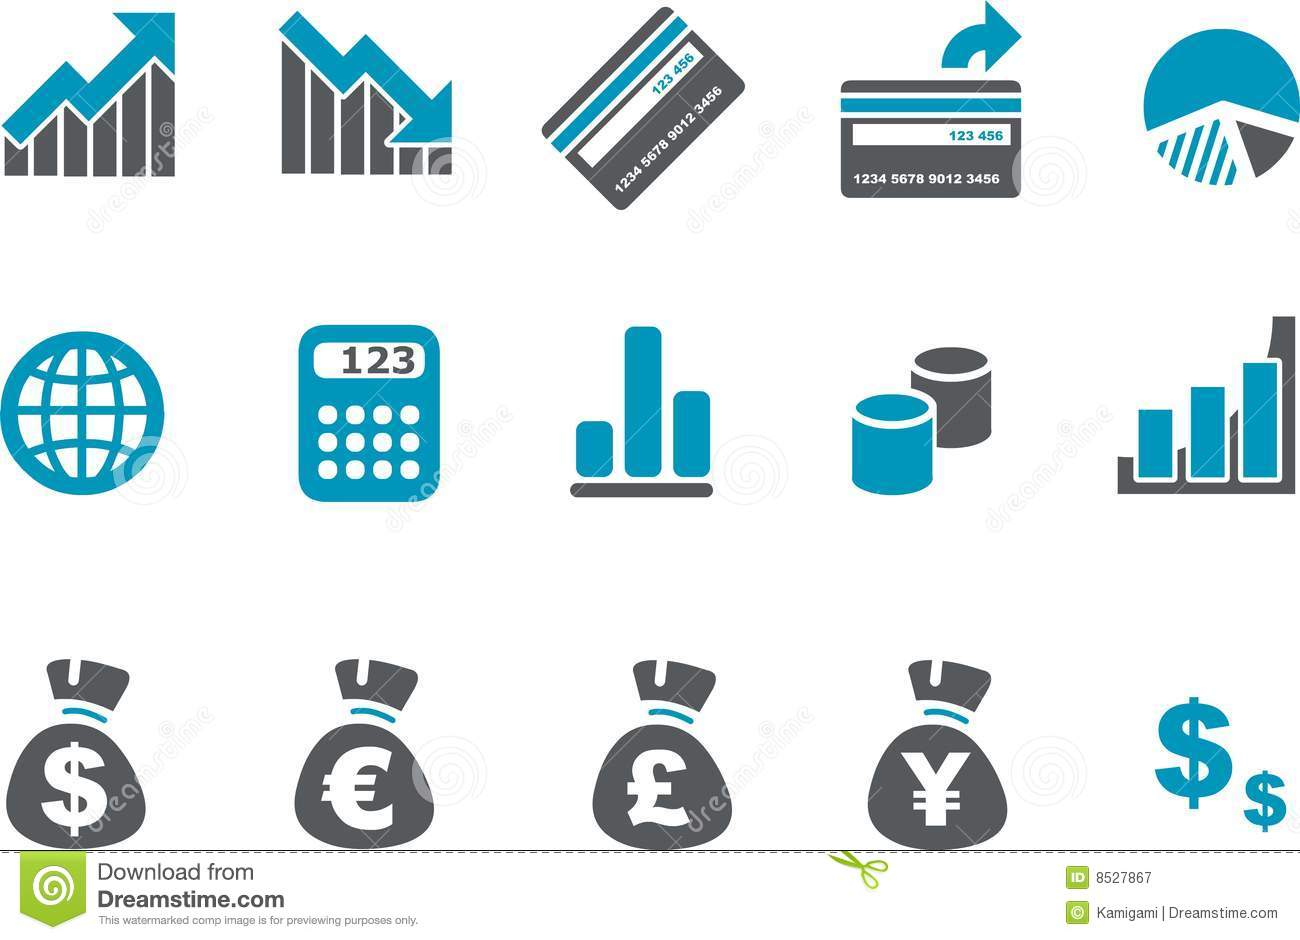 Money Icon Set Royalty Free Stock Photography - Image: 8527867: dreamstime.com/royalty-free-stock-photography-money-icon-set...